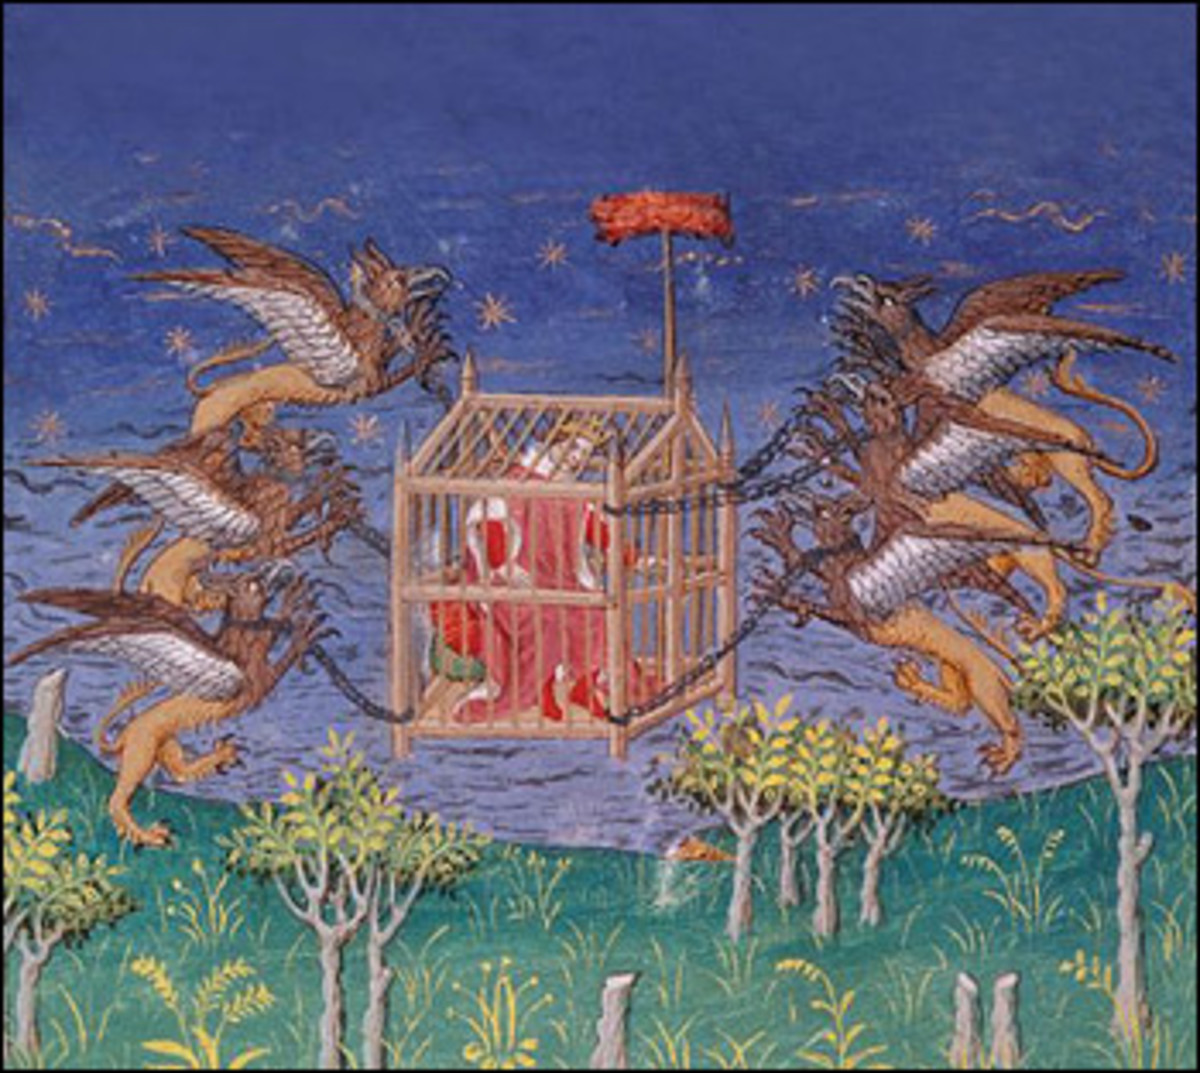 Alexander carried by griffins in his flying machine